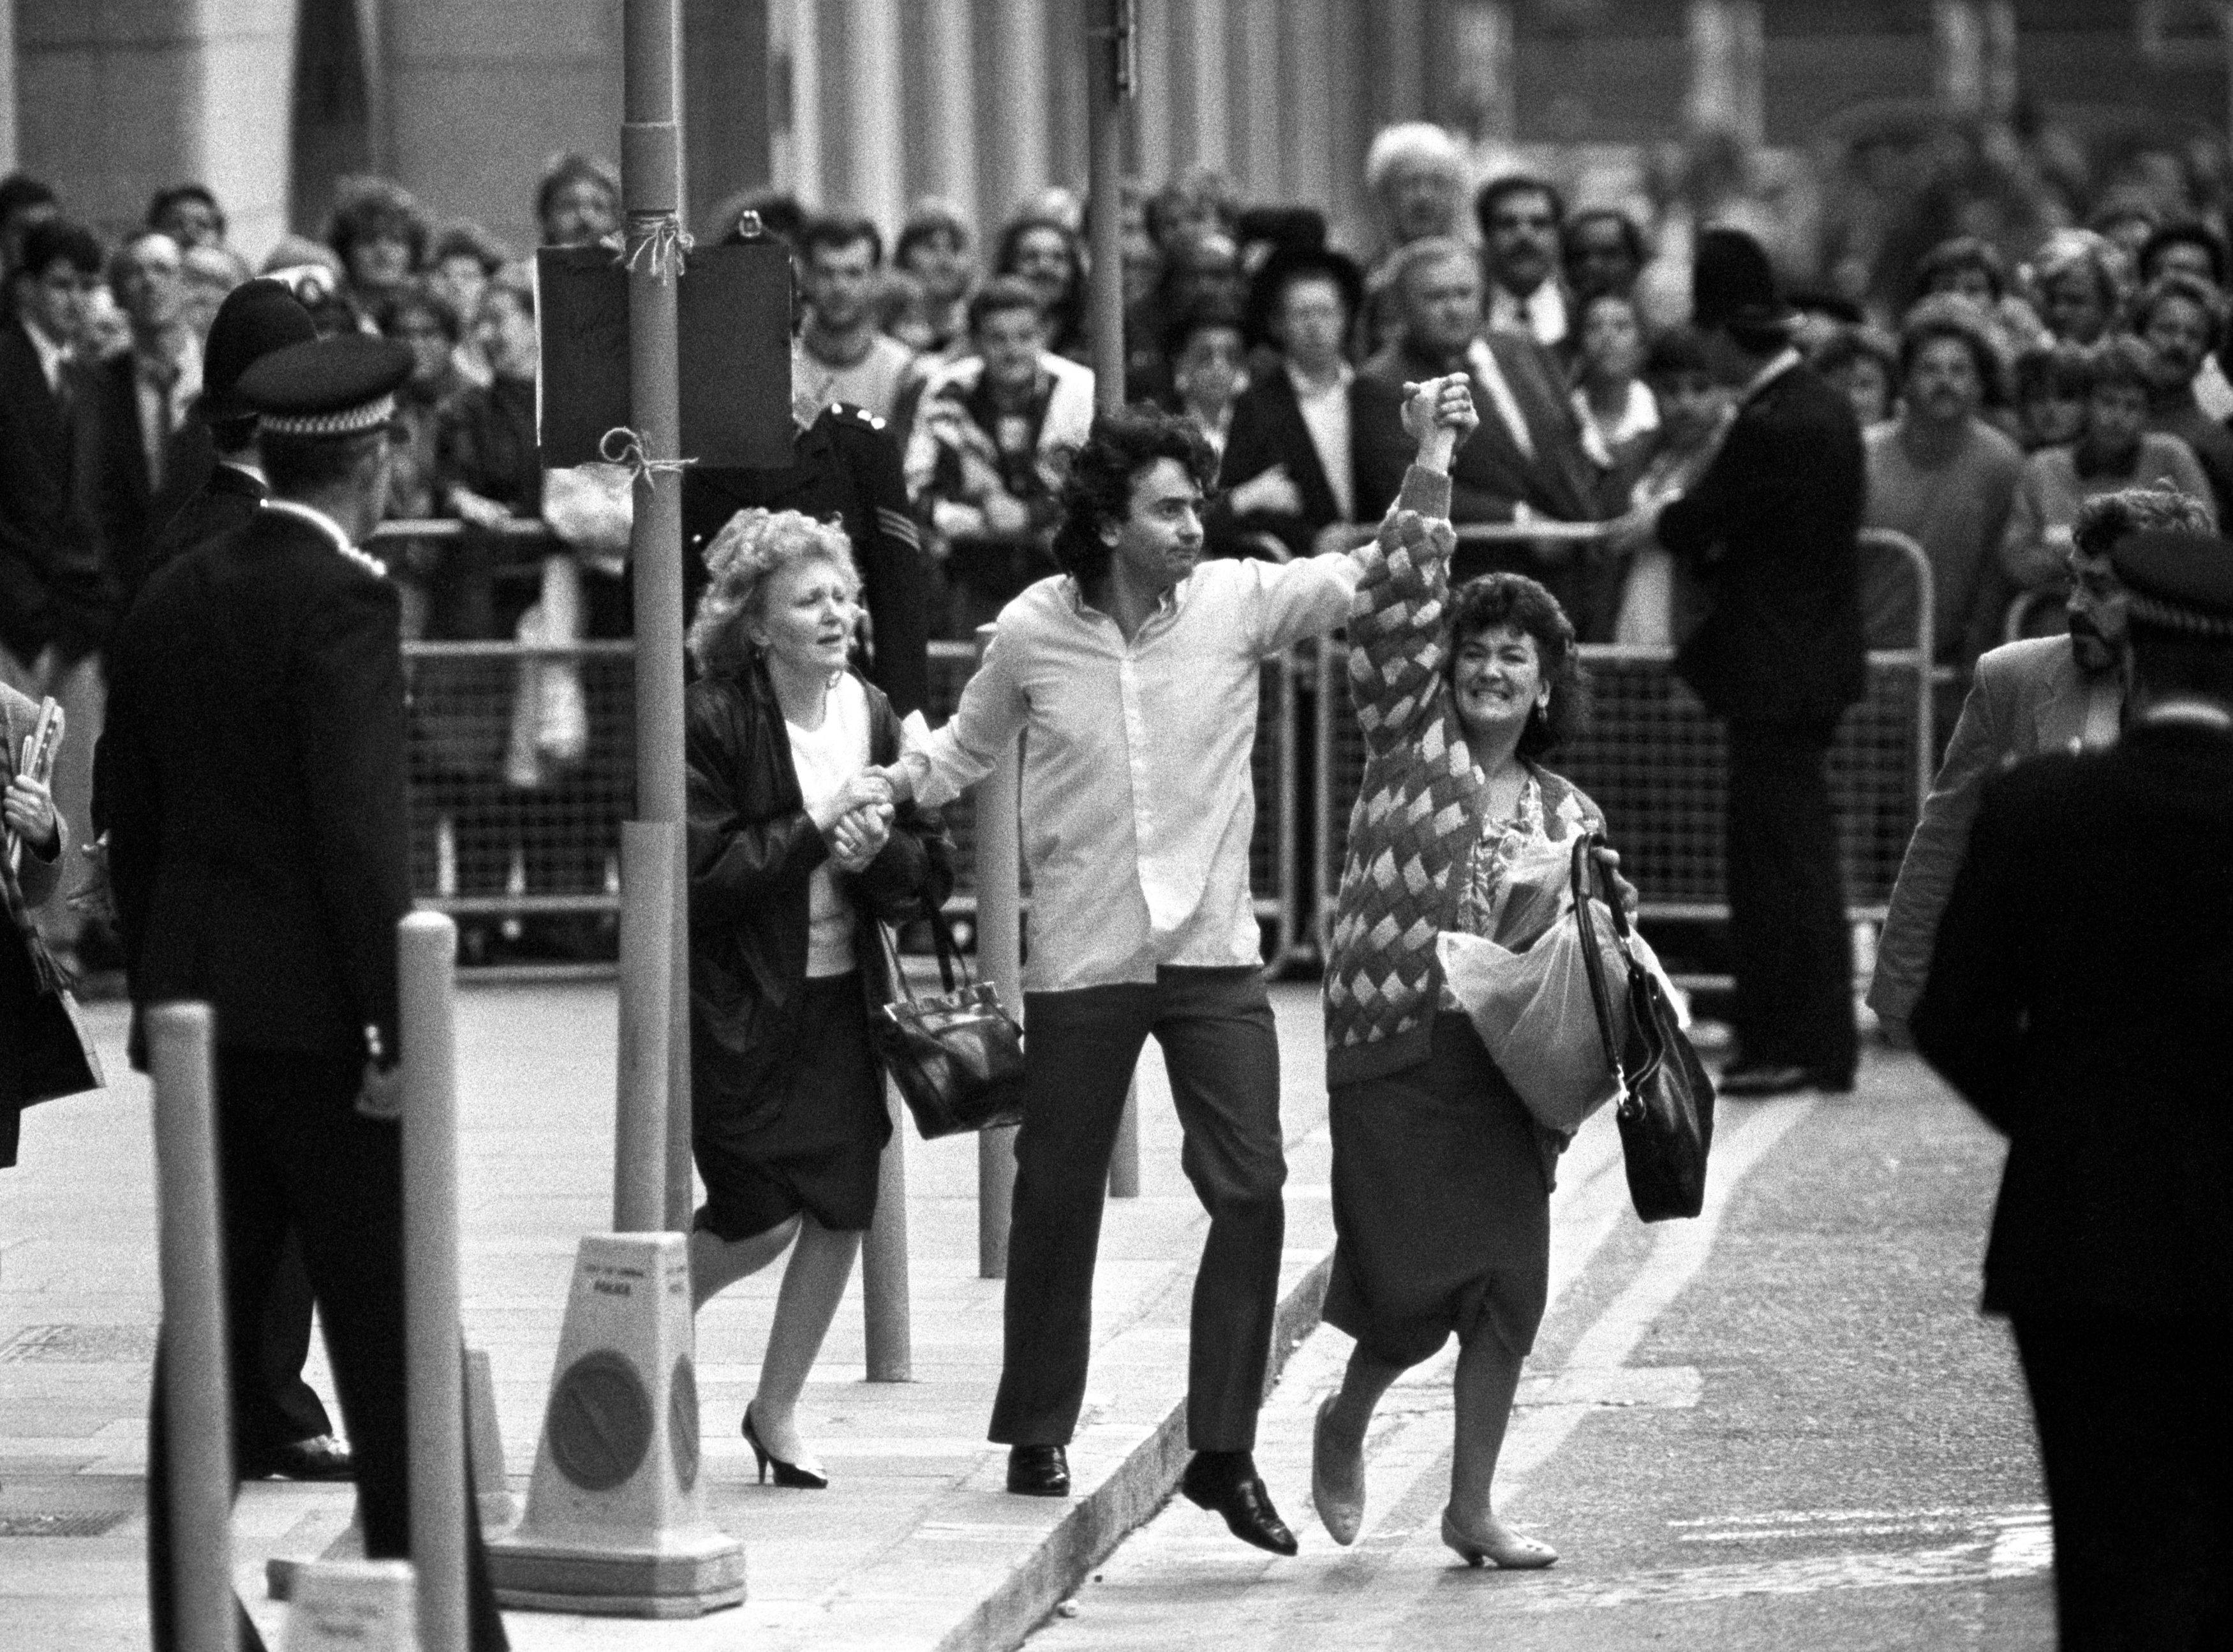 "In this Oct. 19, 1989 file photo, Gerry Conlon, center, is seen outside the Old Bailey after being released for being wrongly convicted of the Guilford pub bombings, in London. His family says Gerry Conlon, who was imprisoned unjustly for an IRA bombing and inspired an Oscar-nominated film, has died at his Belfast home after a long battle with cancer. The 60-year-old Conlon was a central figure in one of Britain's greatest miscarriages of justice. He and three others were convicted and sentenced to life for the 1974 bombing of a pub in Guildford, near London, that killed five people. Conlon always protested his innocence, a position vindicated in 1989 when the so-called Guildford Four were exonerated and freed. By then his father Giuseppe, convicted of an alleged lesser role in the bombing, had already died behind bars. Conlon's autobiography, ""Proved Innocent"" was the basis for 1993's ''In the Name of the Father'' starring Daniel Day-Lewis as Conlon."